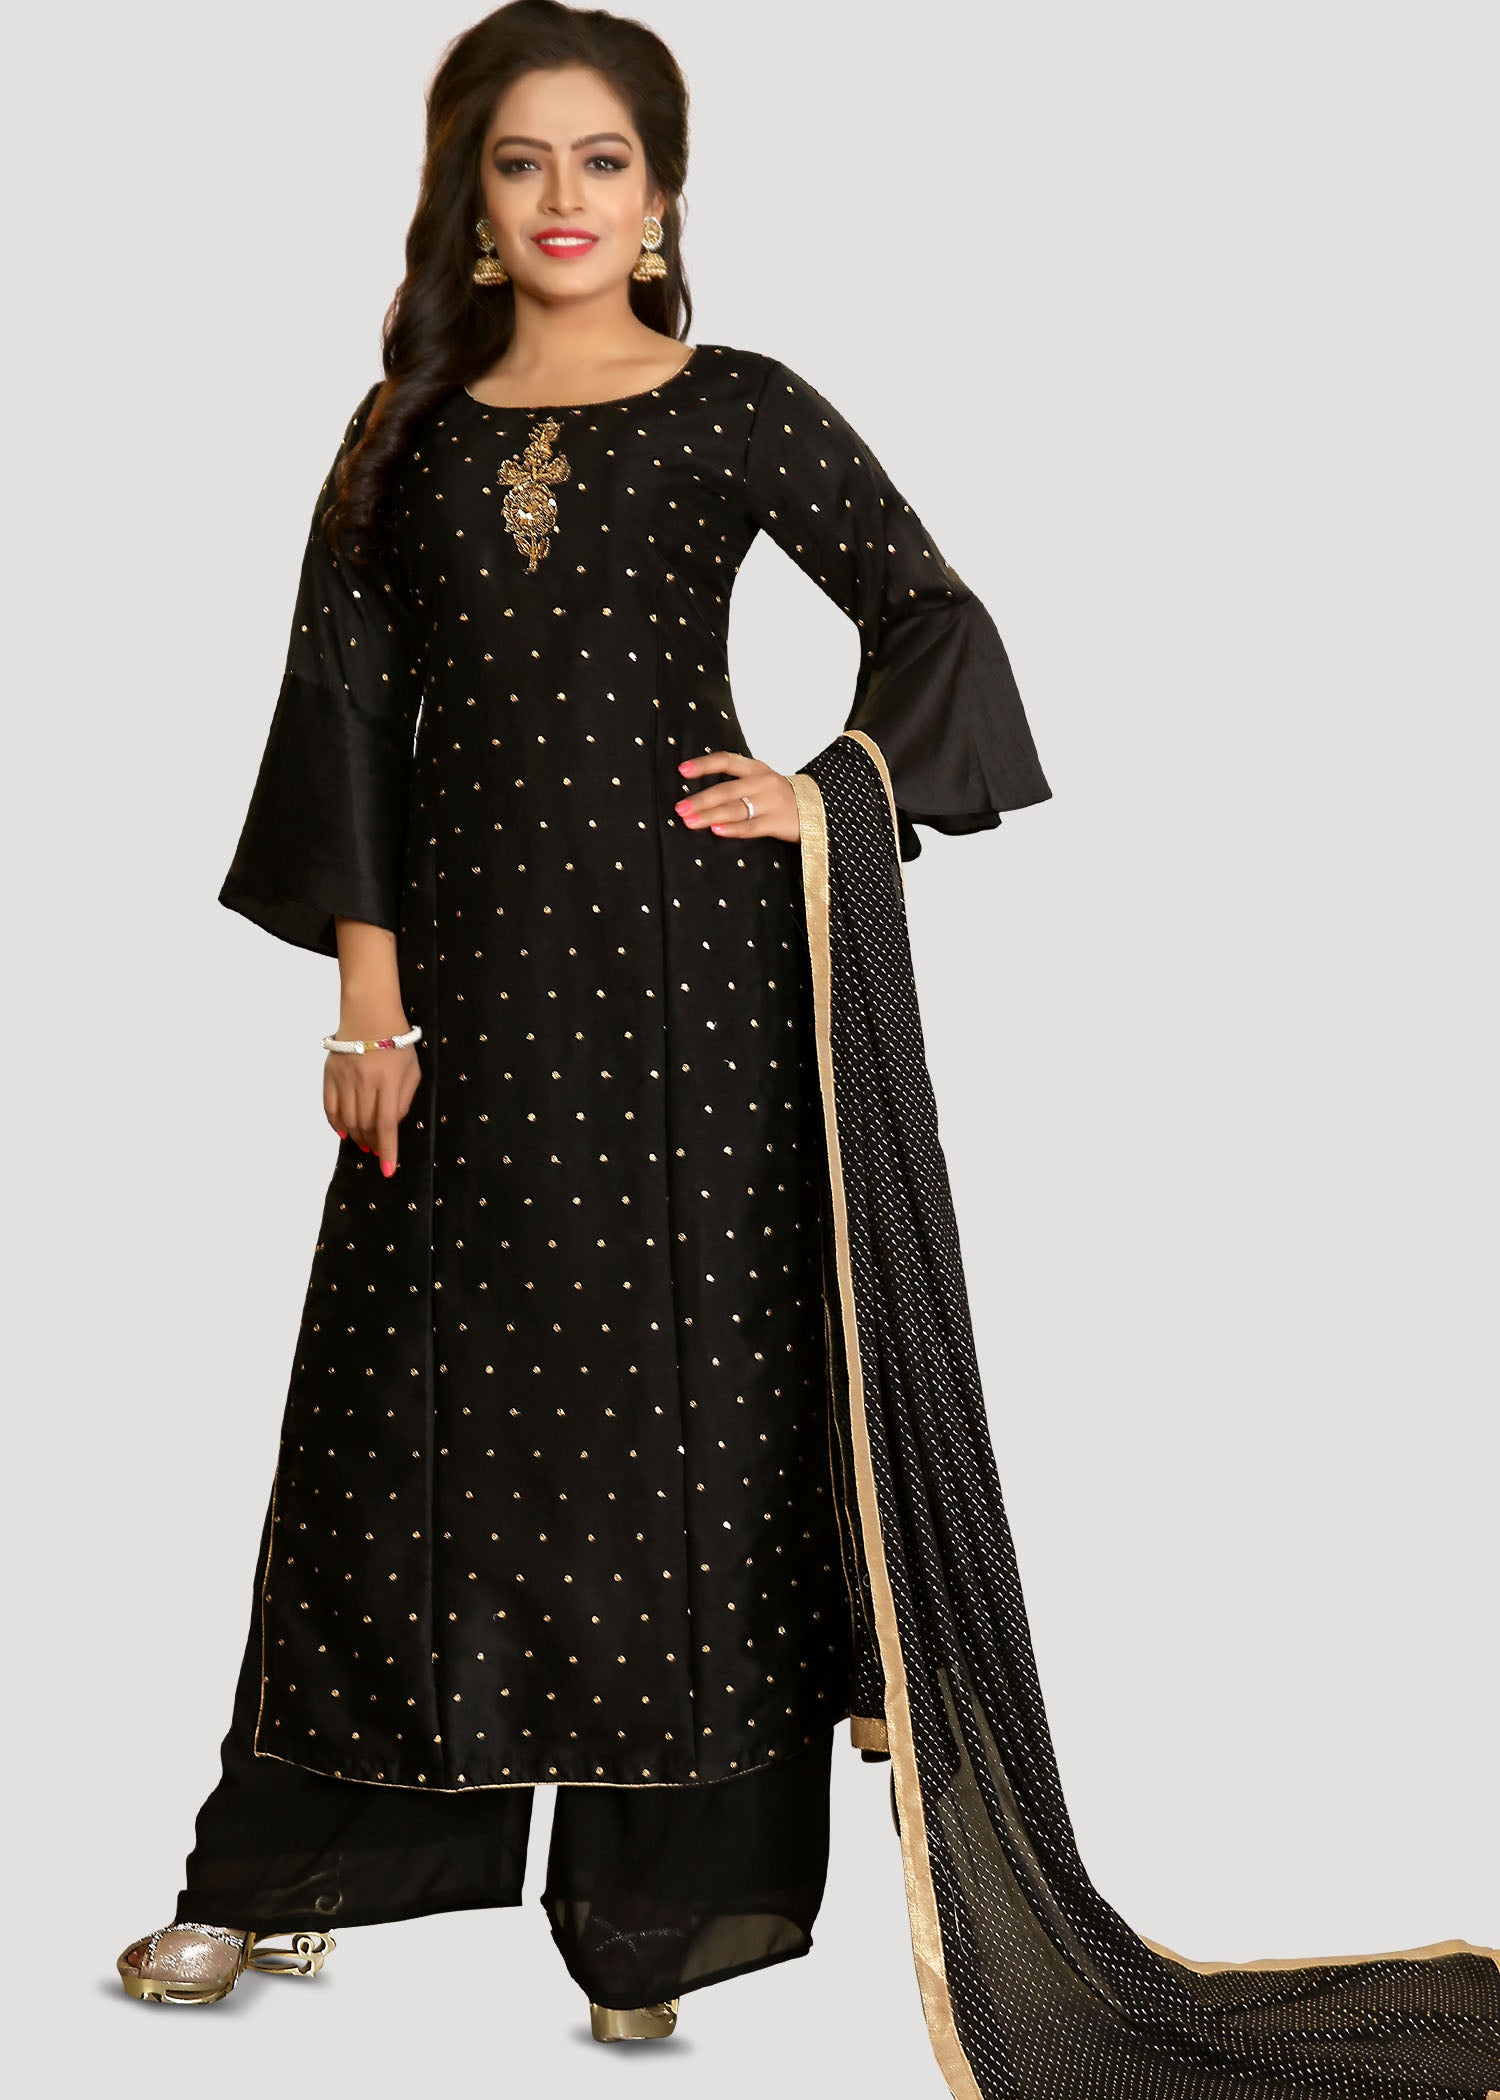 Soft Fabric Palazzo Suit with resham hand embroidery-Black